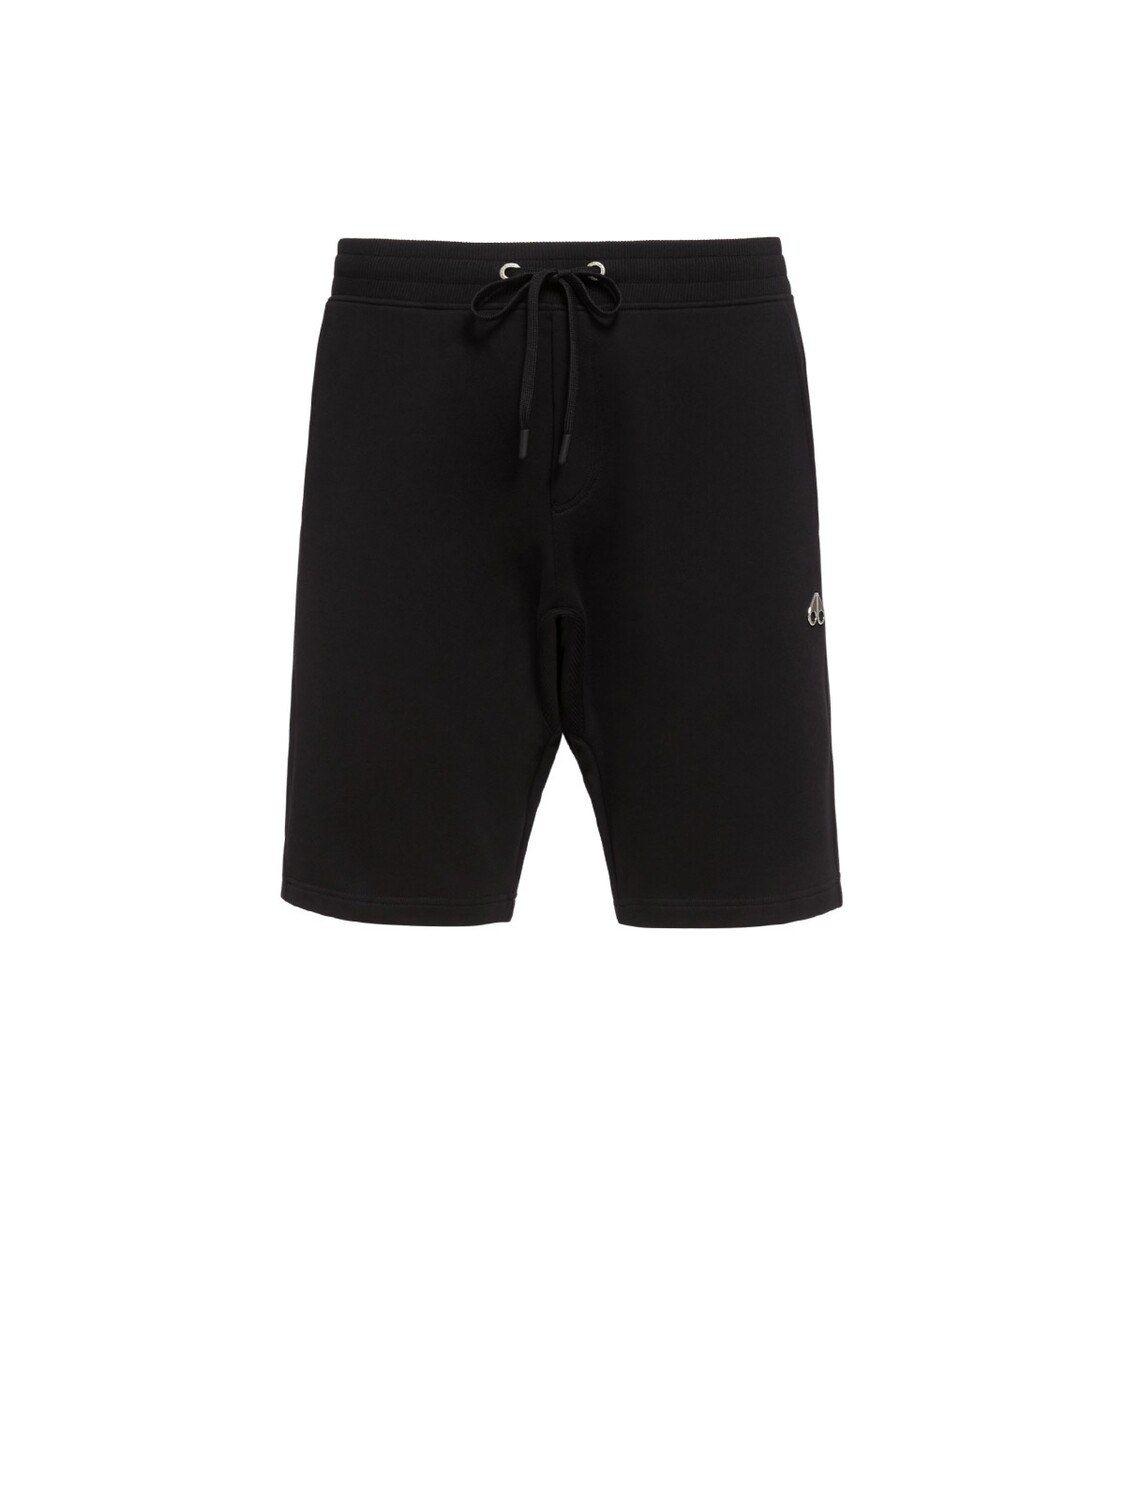 Moose Knuckles | LT Years Short | Black